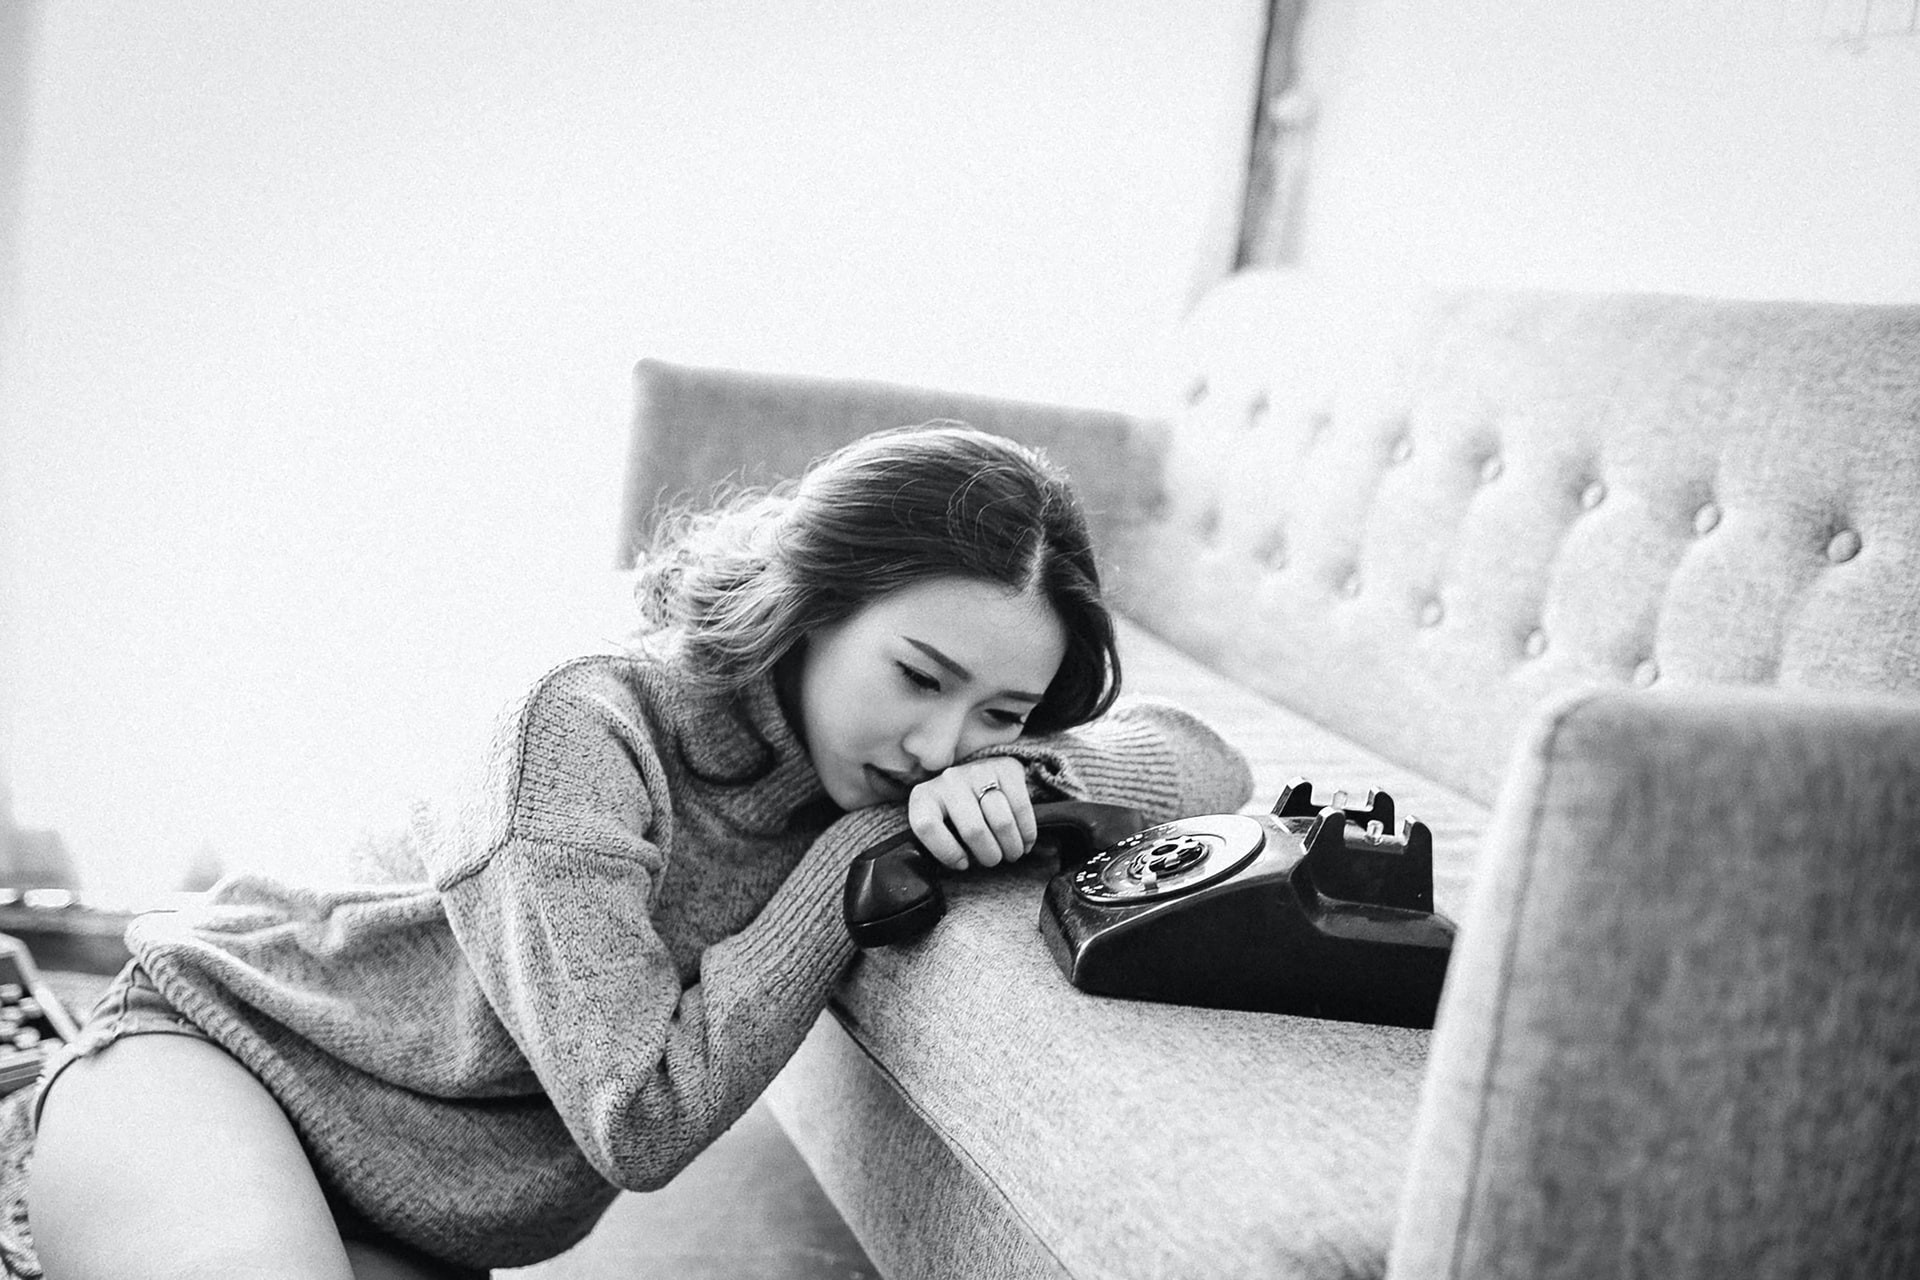 Black and white picture. Sad woman staring at an oldschool phone, the handset in her hand.